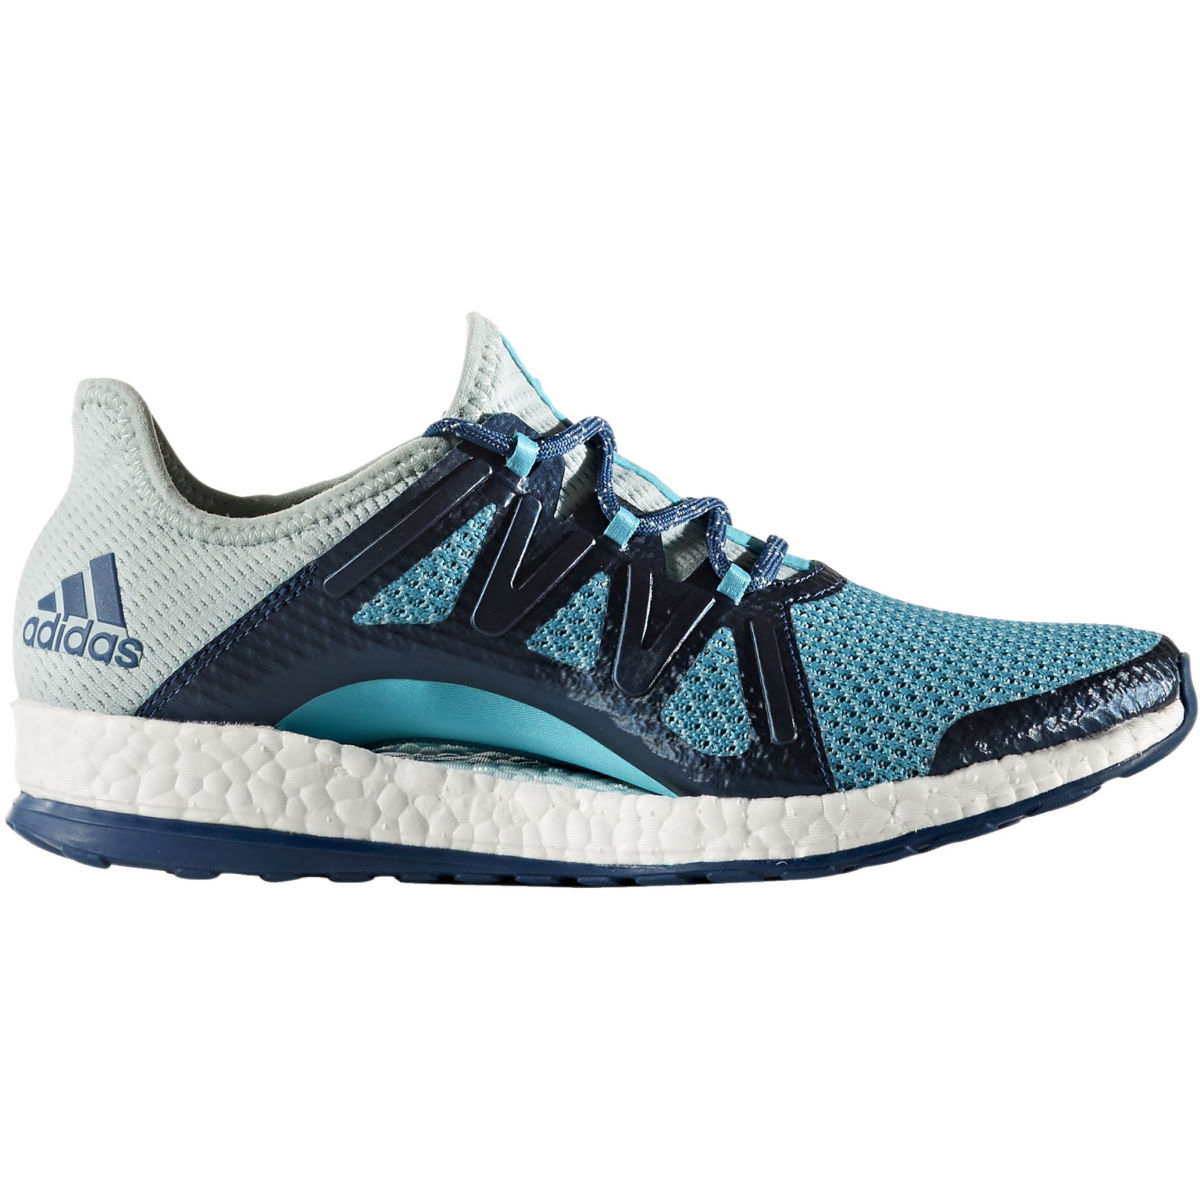 Chaussures Femme adidas Pure Boost Xpose - 4 Tactile Green/Energy